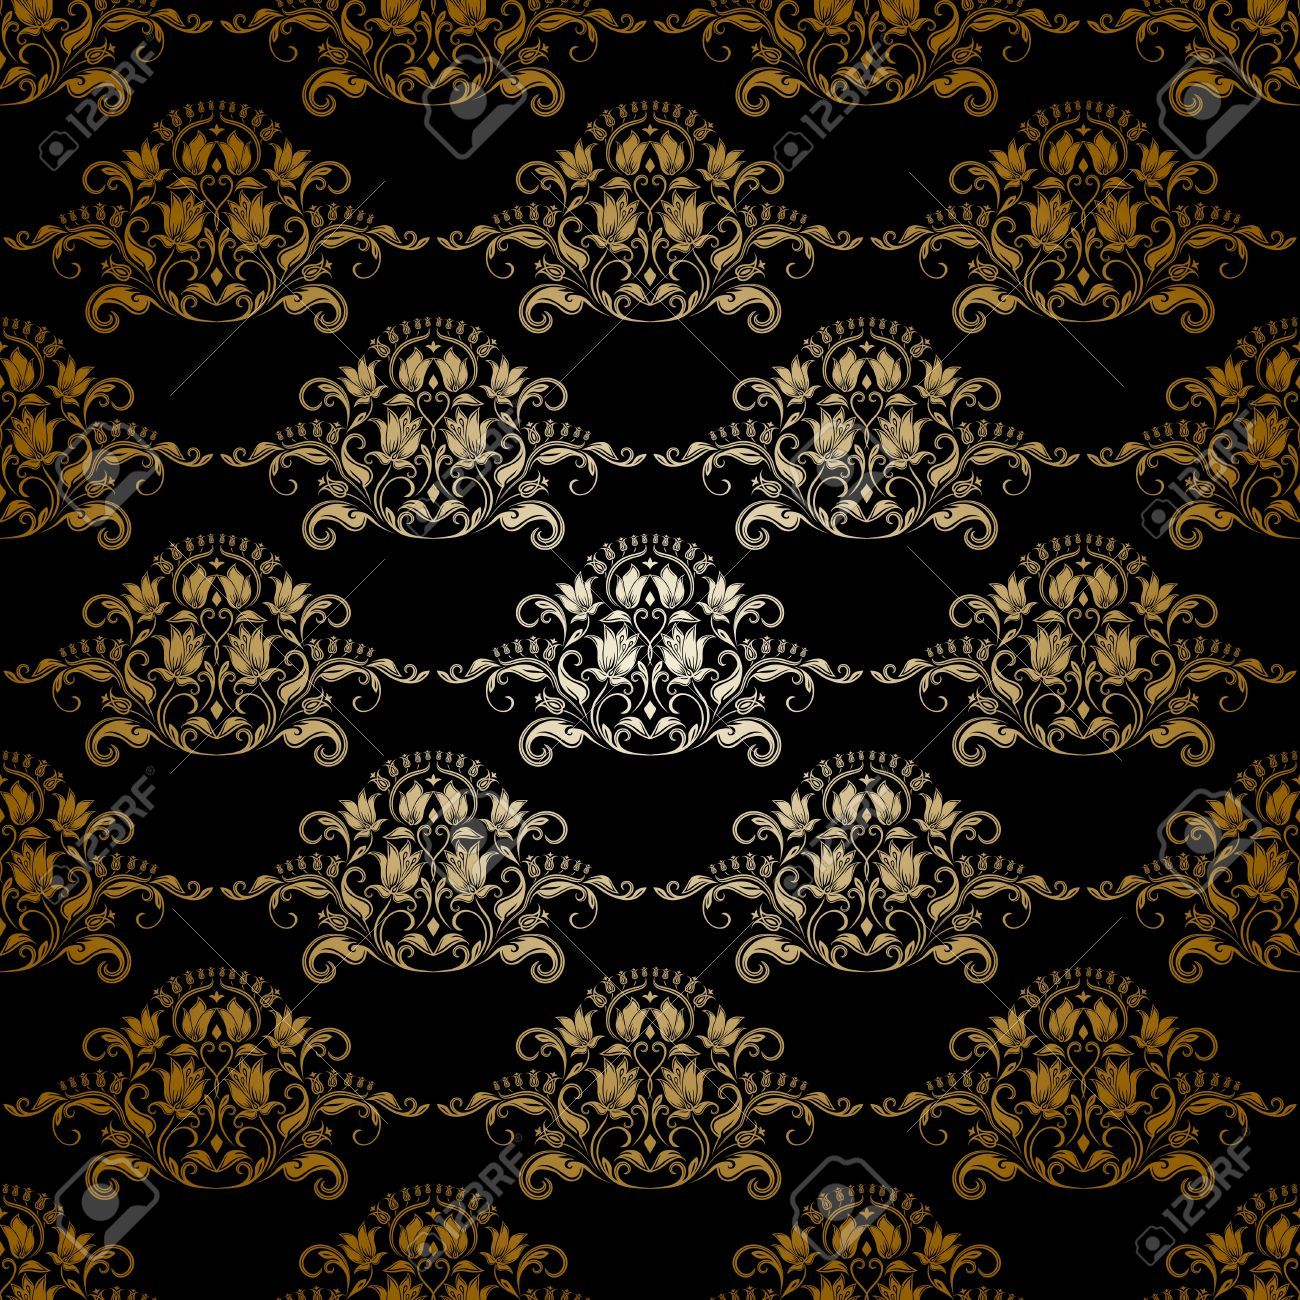 Damask Seamless Floral Pattern Royal Wallpaper Flowers On A Dark Background Stock Vector